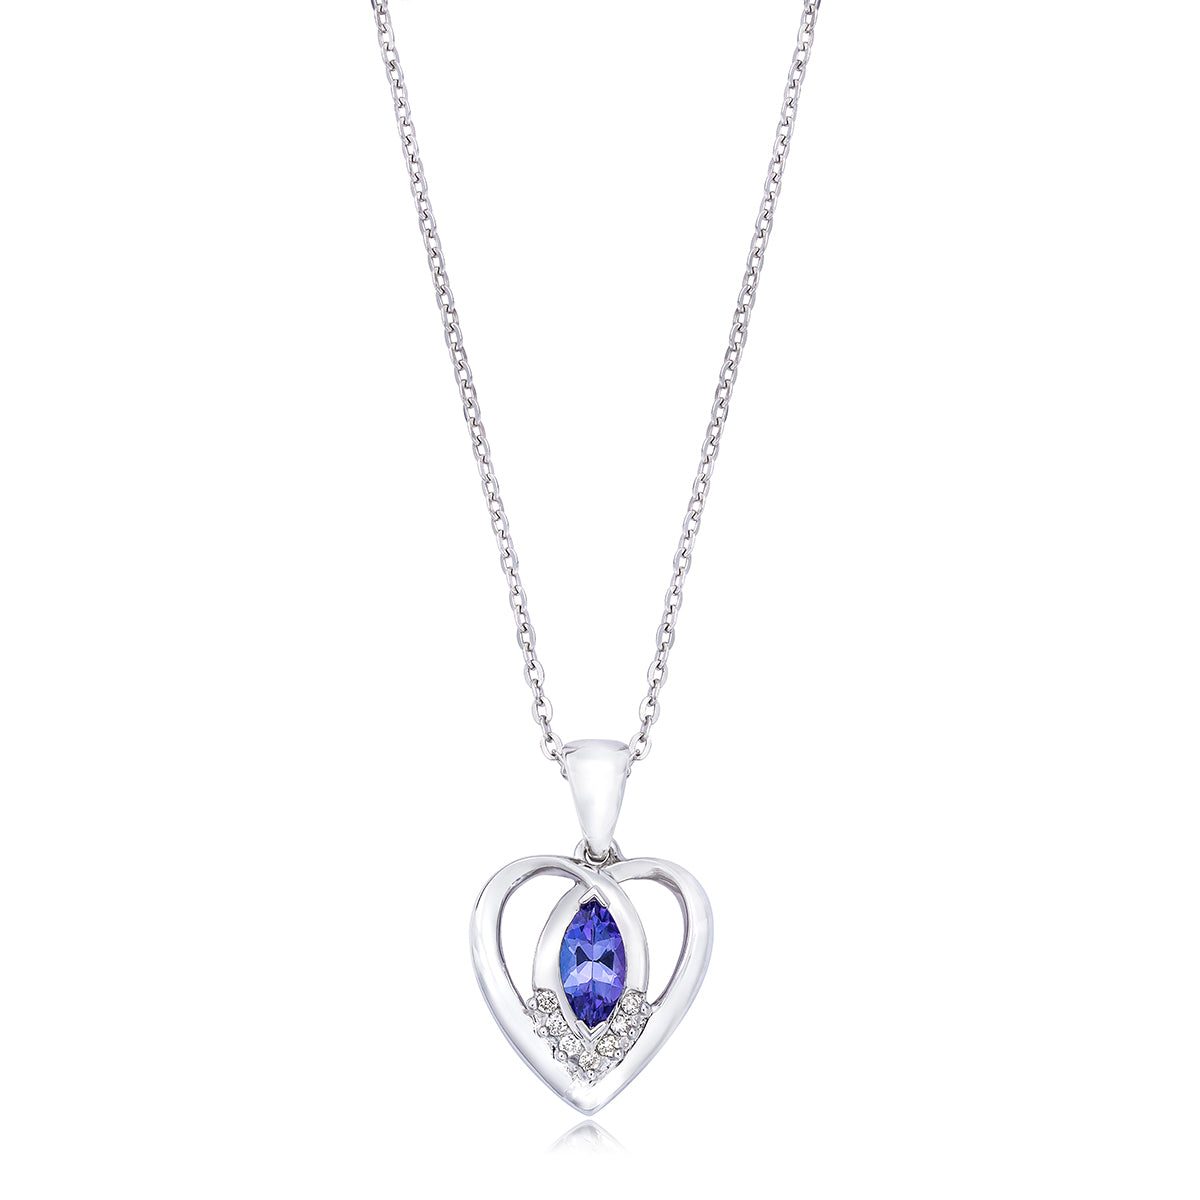 Safi kilima tanzanite diamond heart pendant in sterling silver 40 safi kilima tanzanite diamond heart pendant in sterling silver 40 aloadofball Gallery